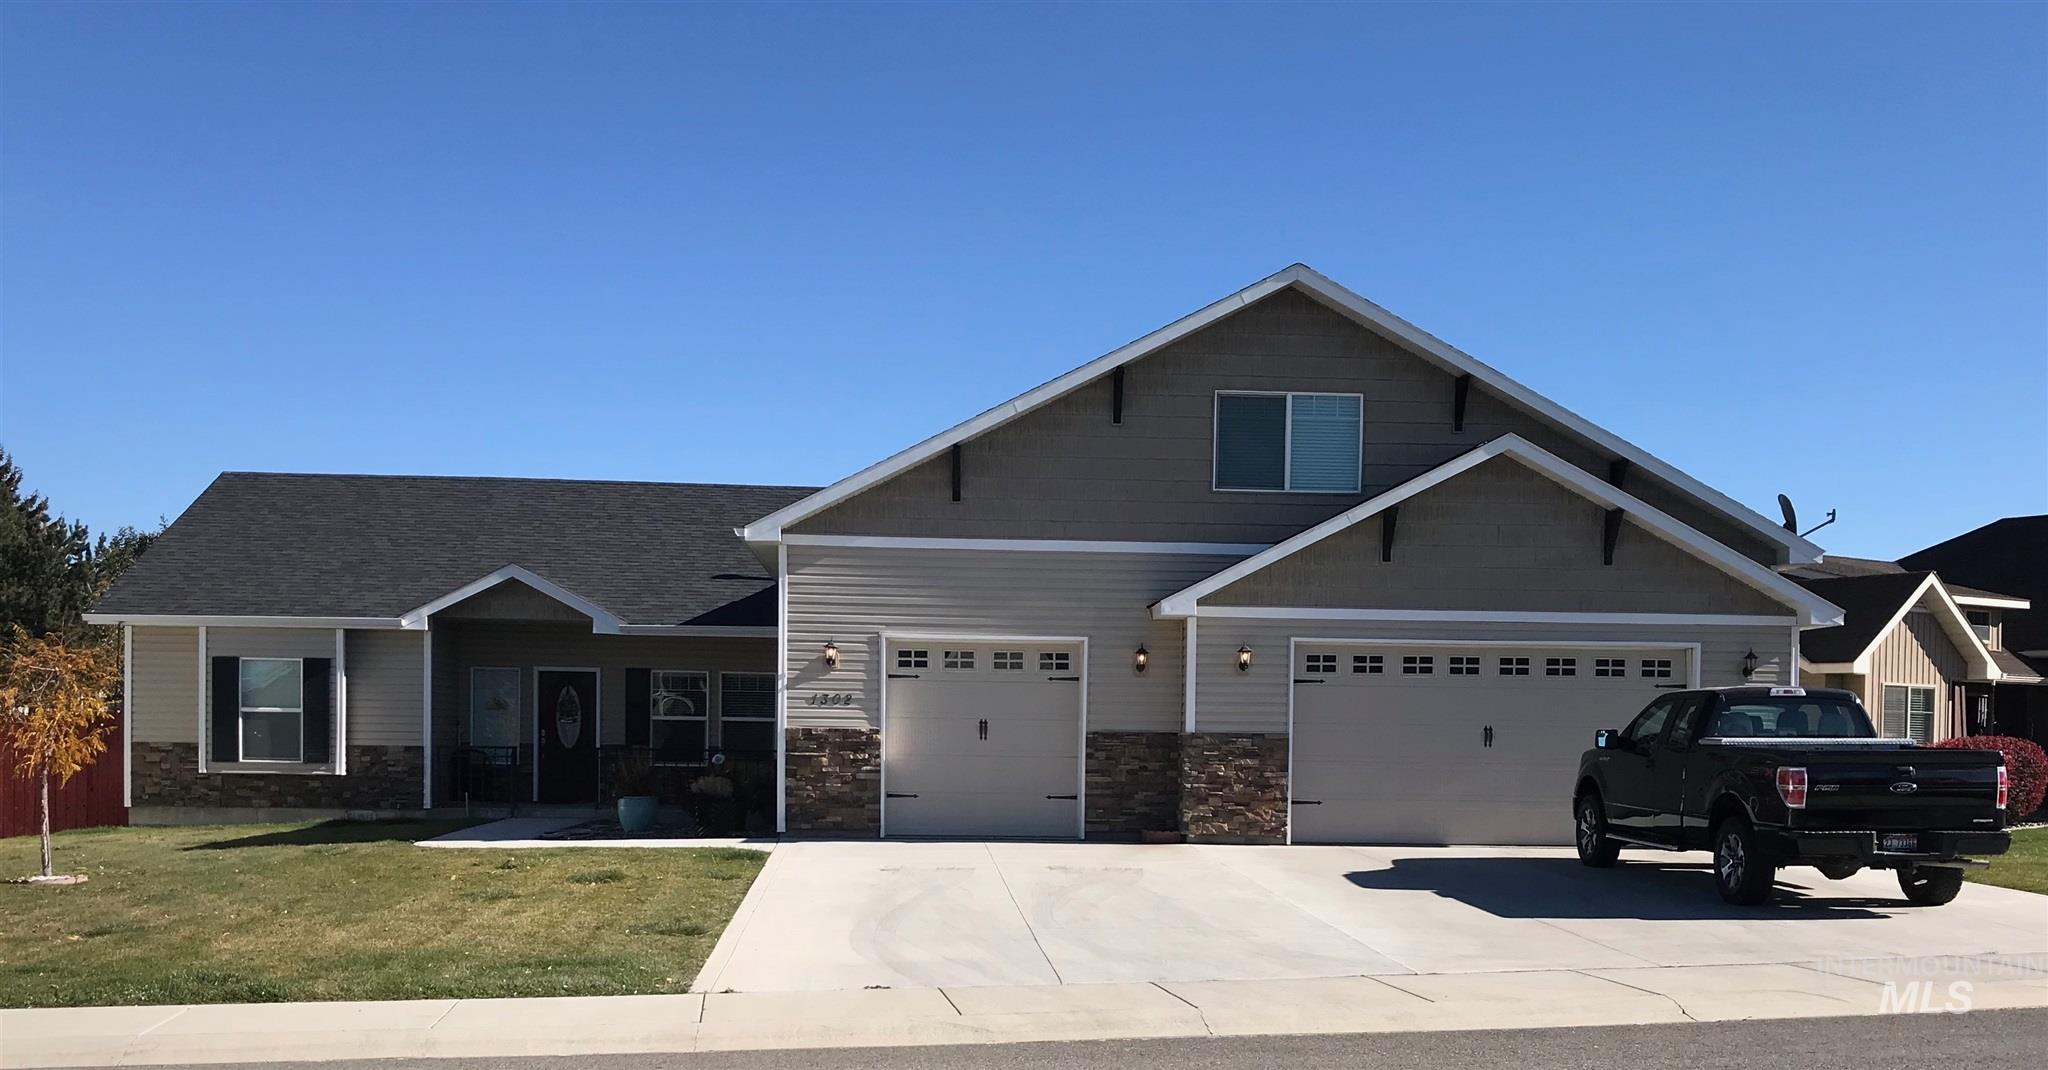 1302 5th Ave East, Jerome, Idaho 83338, 3 Bedrooms, 2.5 Bathrooms, Residential For Sale, Price $300,000, 98785154